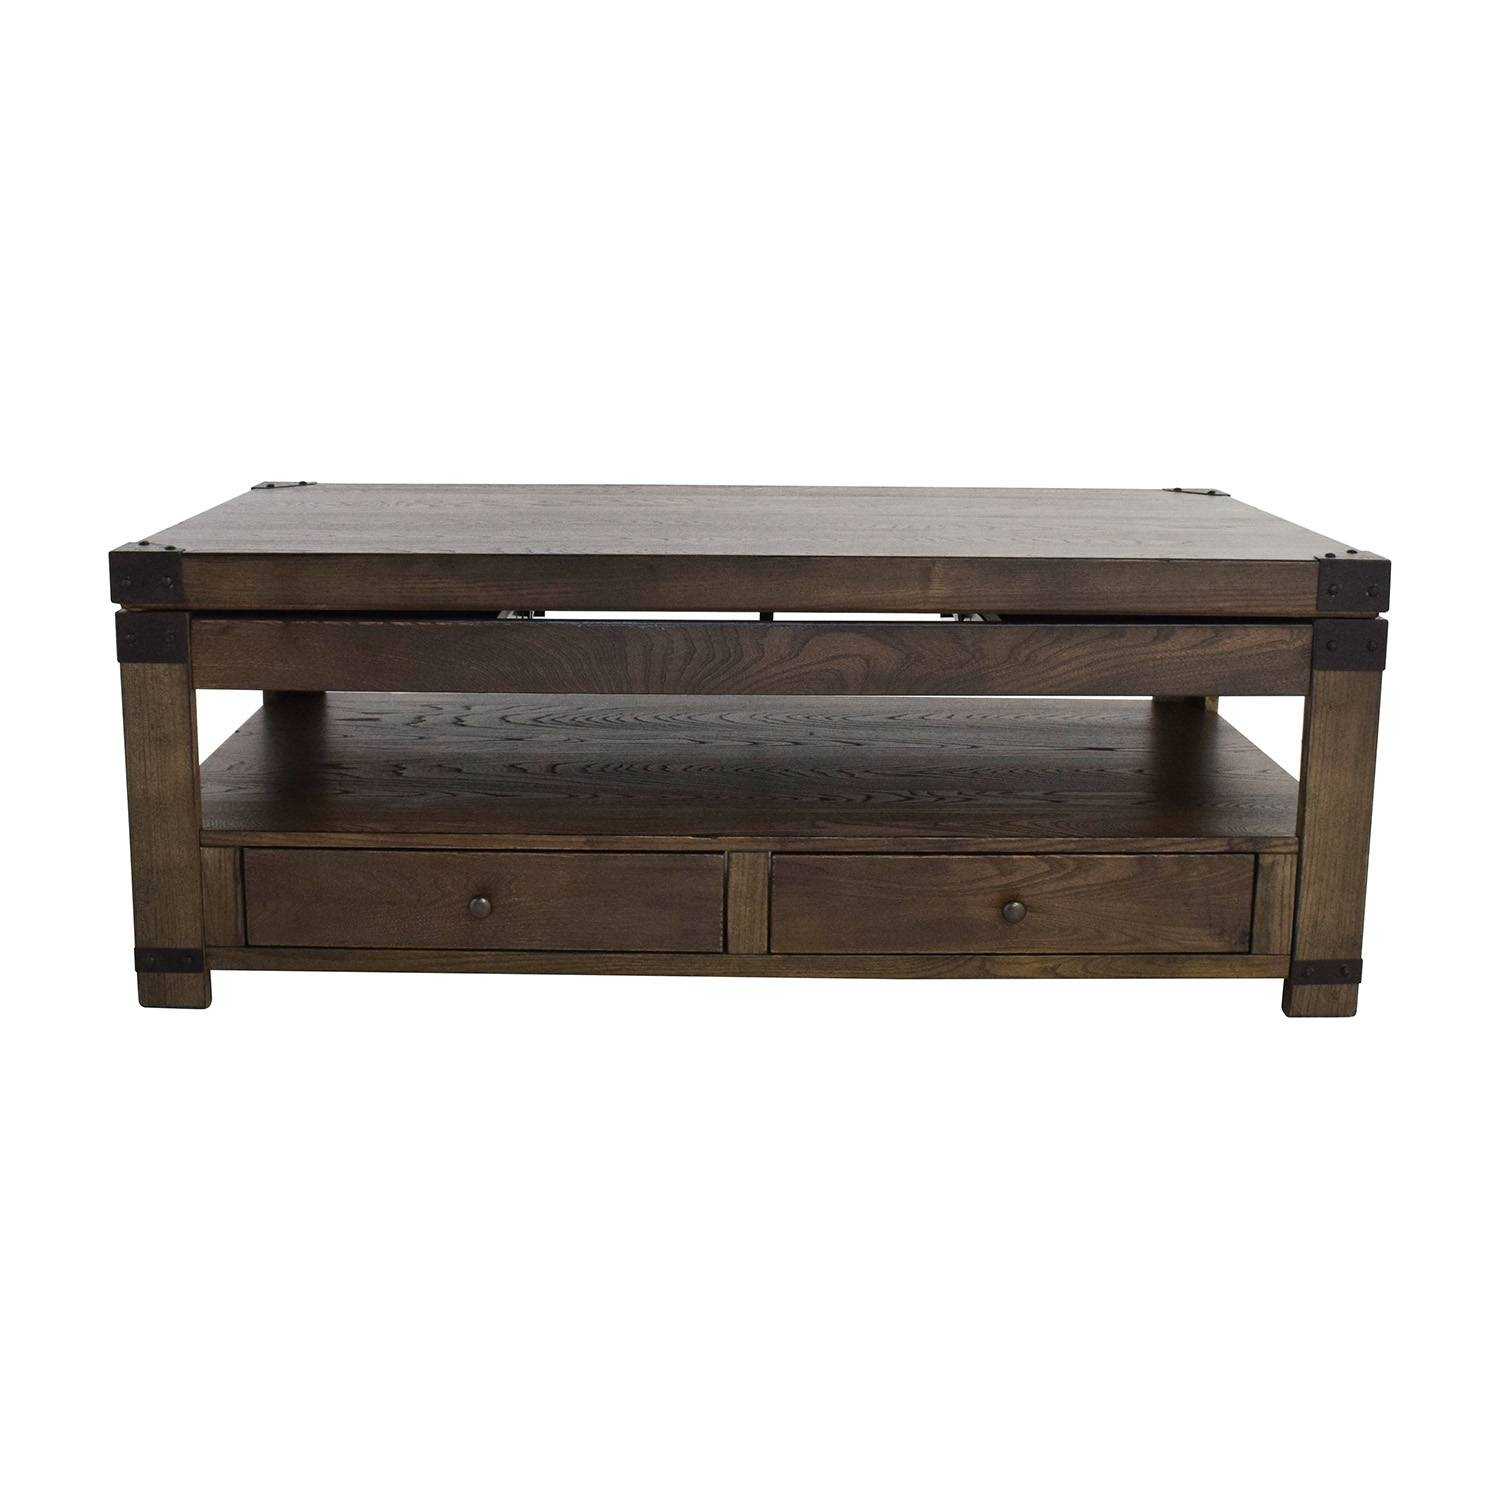 35% Off - Joss And Main Joss And Main Kieran Coffee Table / Tables in Joss and Main Coffee Tables (Image 1 of 30)